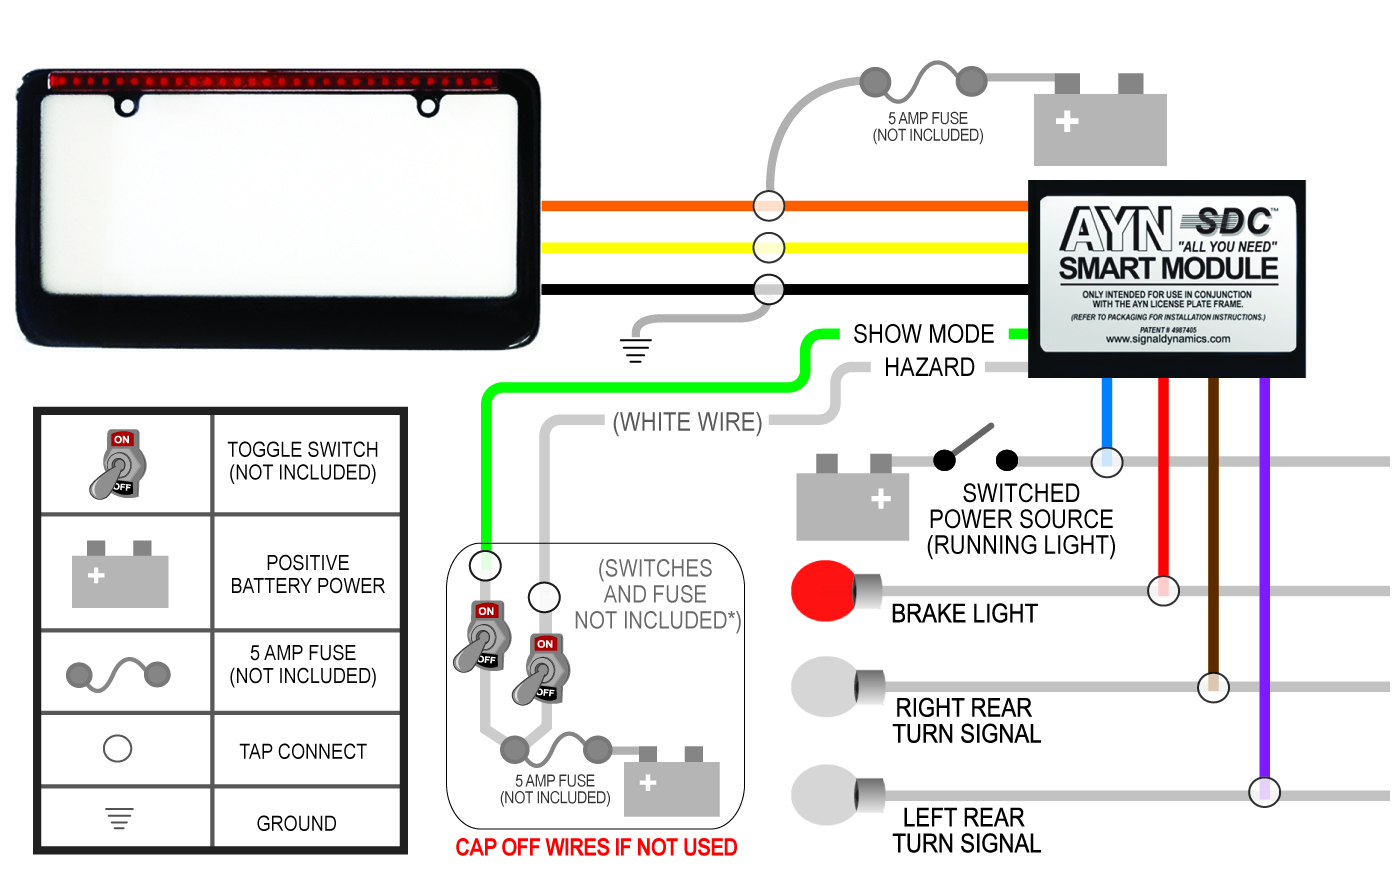 black auto wiring diagram?t=1399476781 black ayn automotive license plate frame & smart module combo Basic Turn Signal Wiring Diagram at gsmportal.co